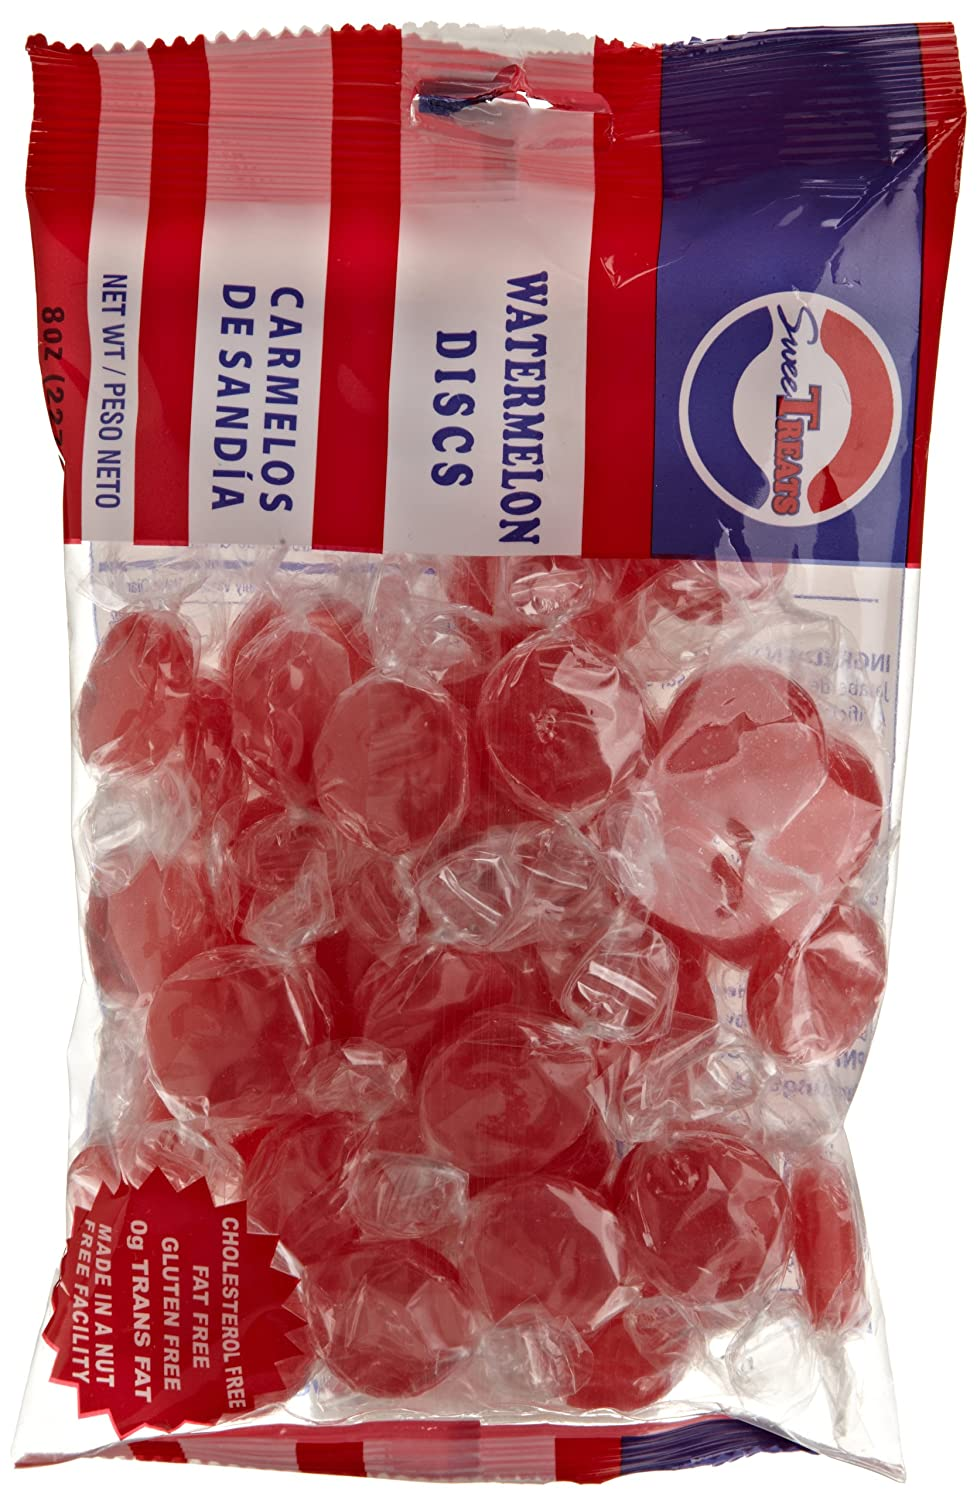 Amazon.com : Sweetreats Discs, Watermelon, 8-Ounce (Pack of 20) : Hard Candy : Grocery & Gourmet Food